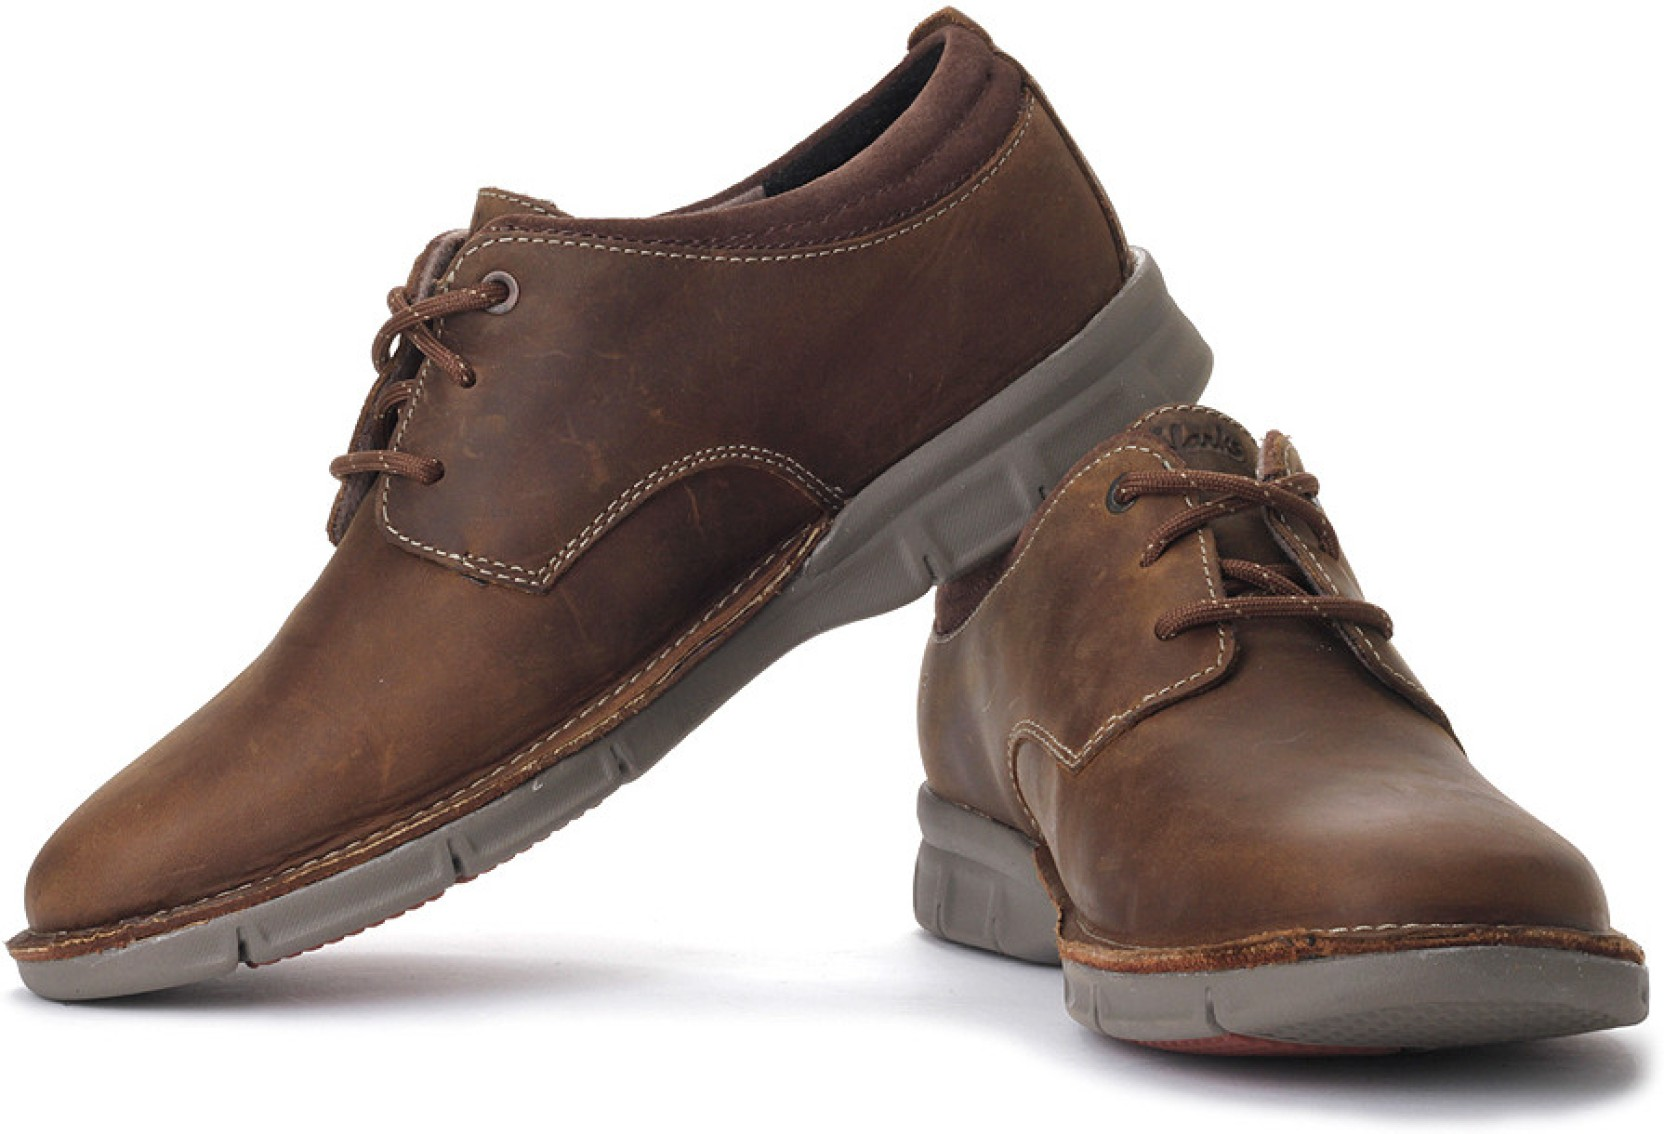 Communication on this topic: Clarks Footwear: AW13 Collection, clarks-footwear-aw13-collection/